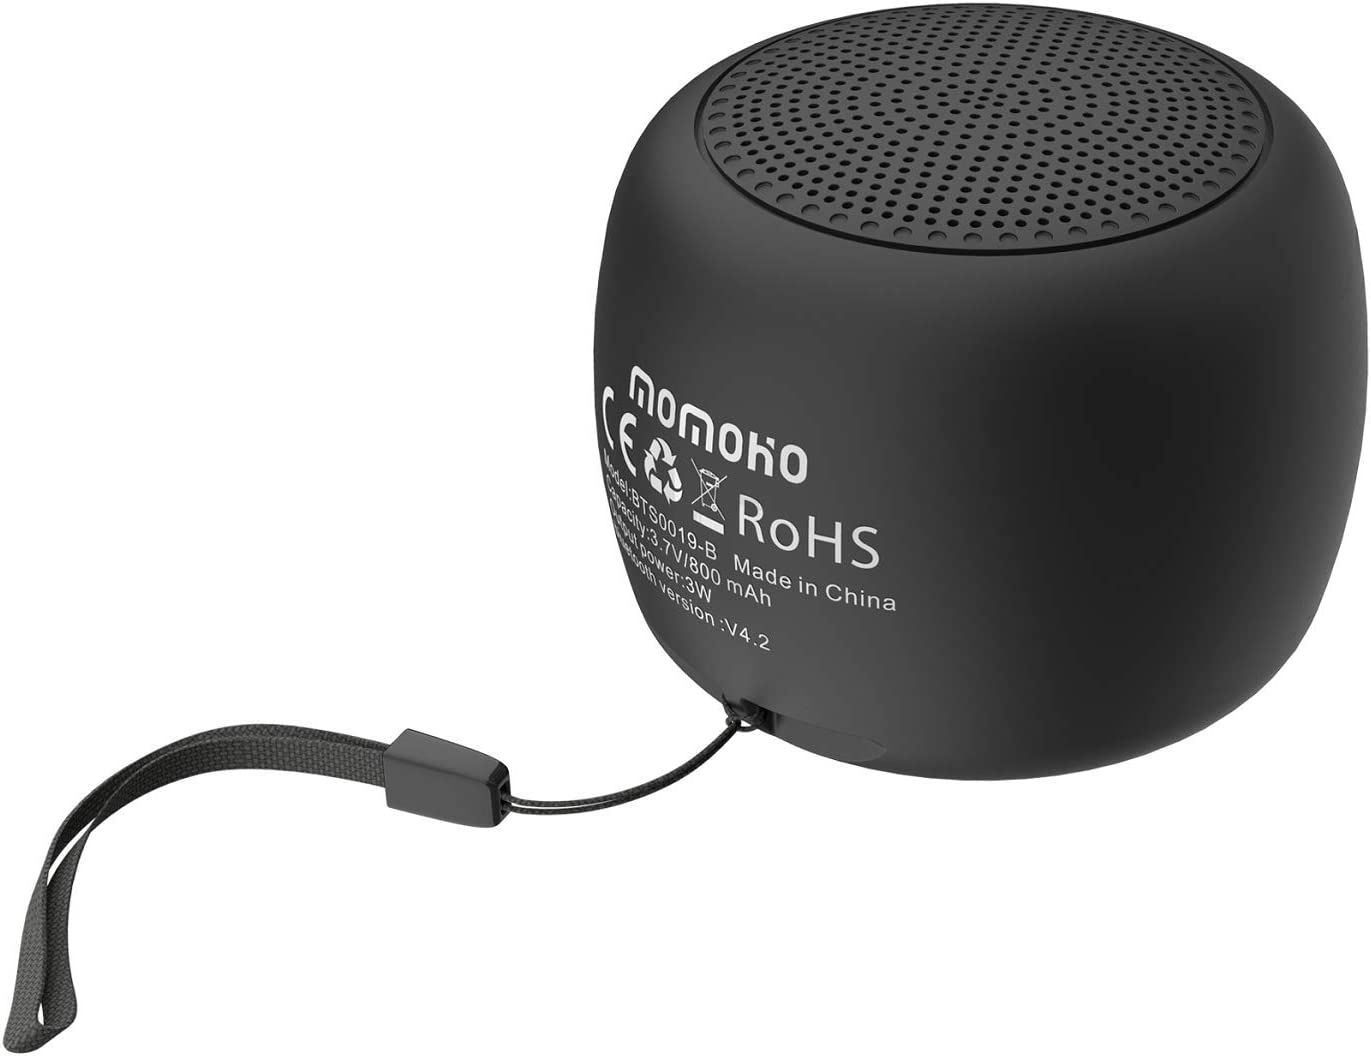 momoho Small Bluetooth Speaker - Mini Size but Great Sound Quality,up to 9  Hours Playtime,Photo Selfie Button & Answer Phone Calls,BTS9 (Black)